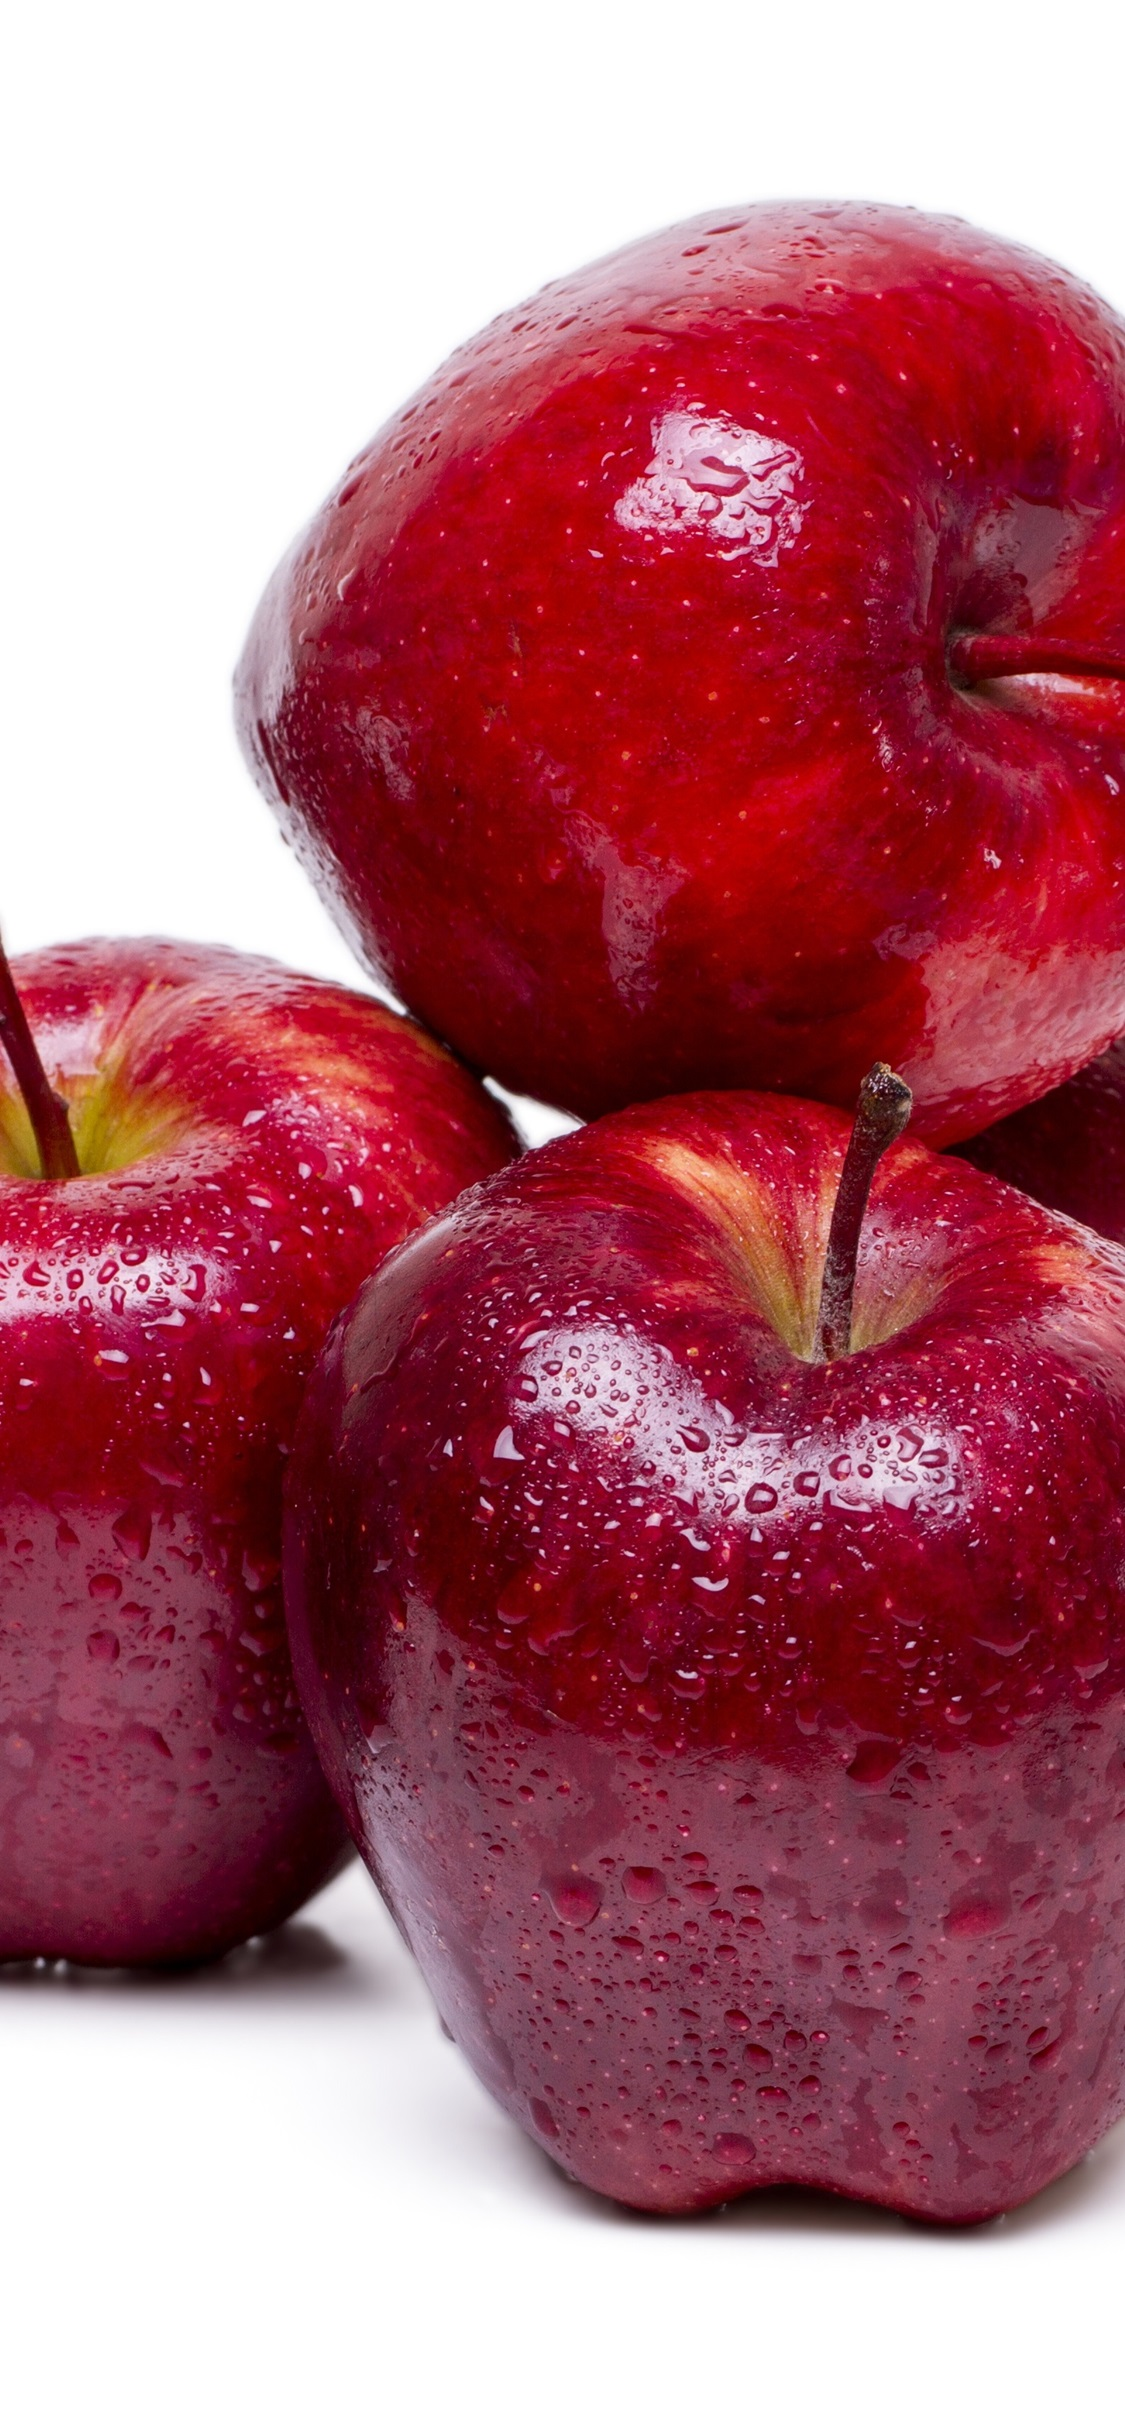 Red Apples Fresh Fruit Water Droplets White Background 1125x2436 Iphone 11 Pro Xs X Wallpaper Background Picture Image